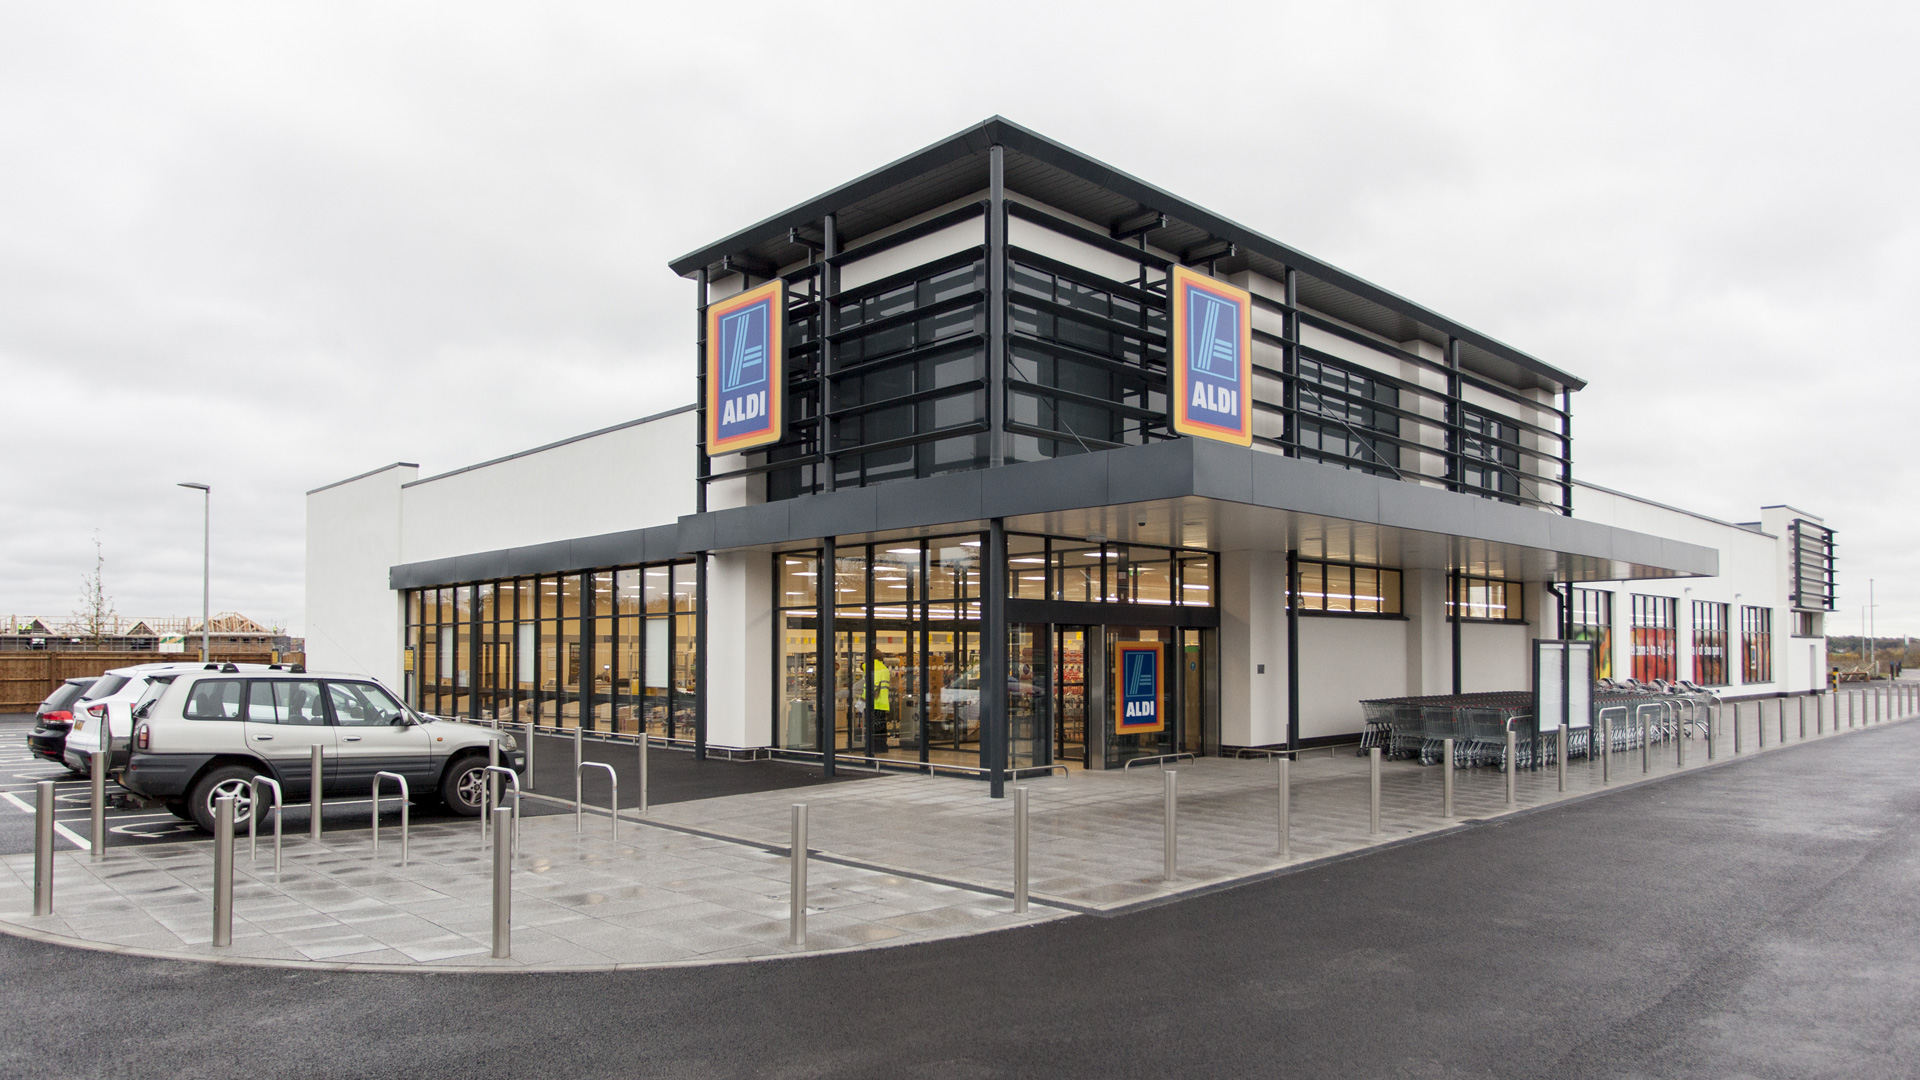 New Aldi Food store